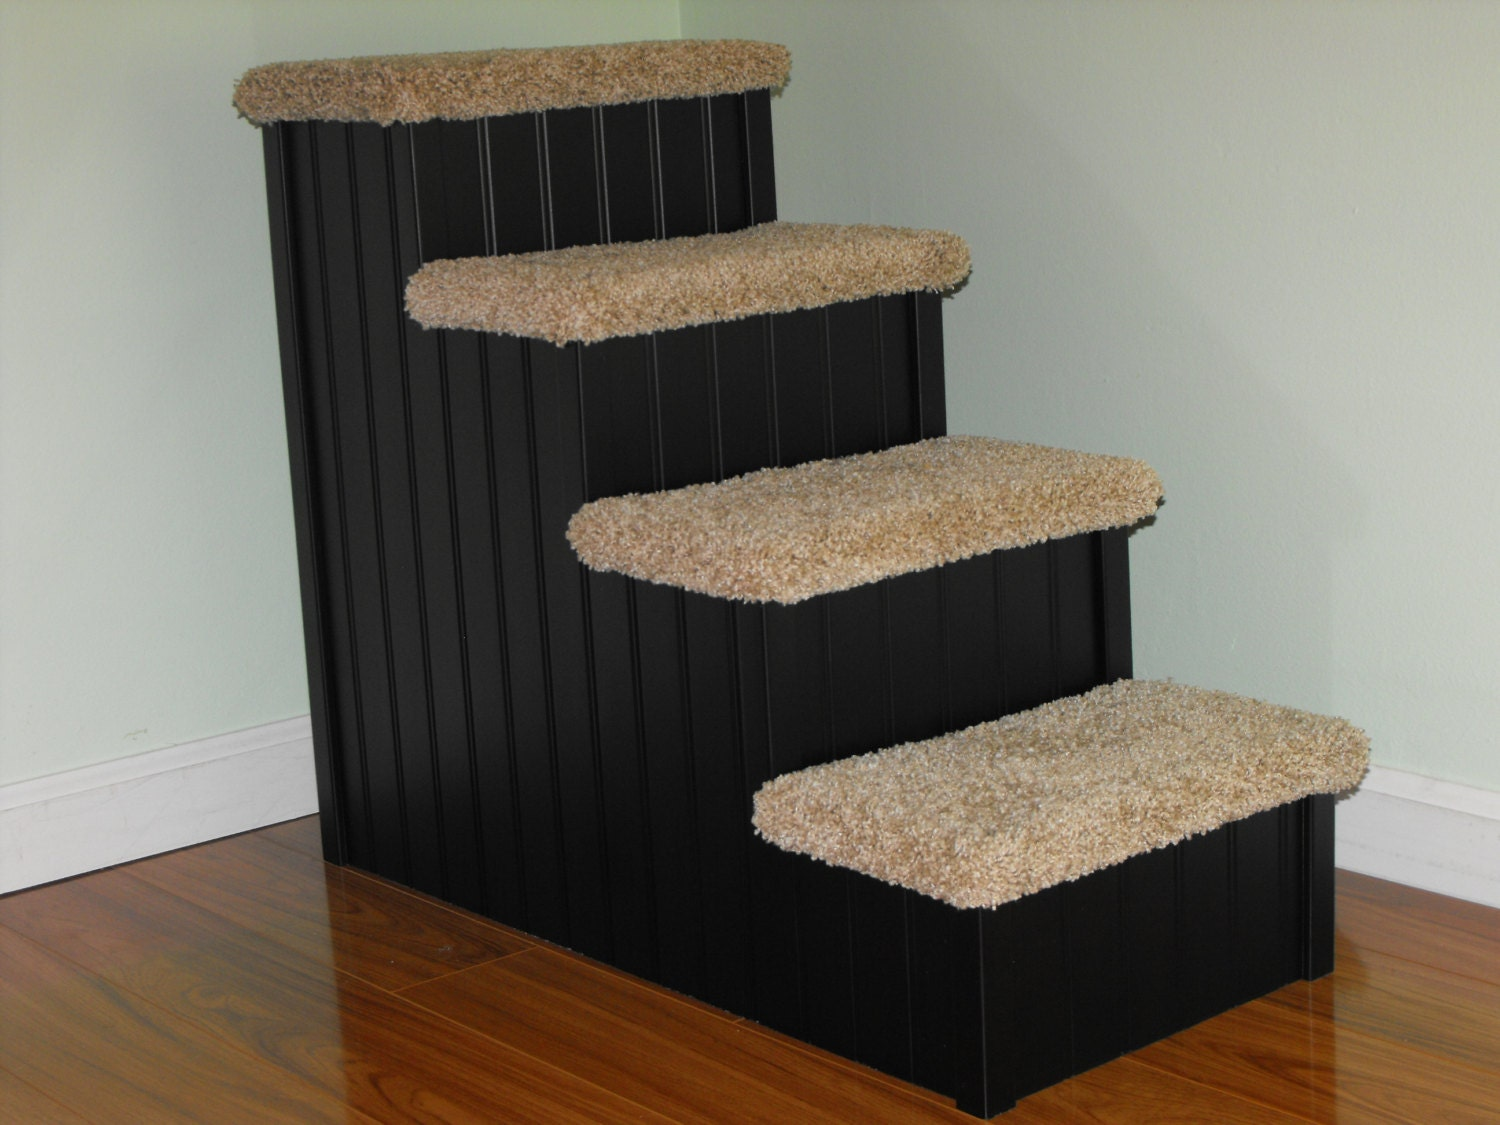 Wonderful Steps For High Beds Part - 5: Dog Steps, Pet Stairs, 24 High Doggie Steps For Beds, Pet Steps For Dogs,  Dog Bed Steps, Pet Steps, Dog Stairs, Pet Furniture, Puppy Stairs